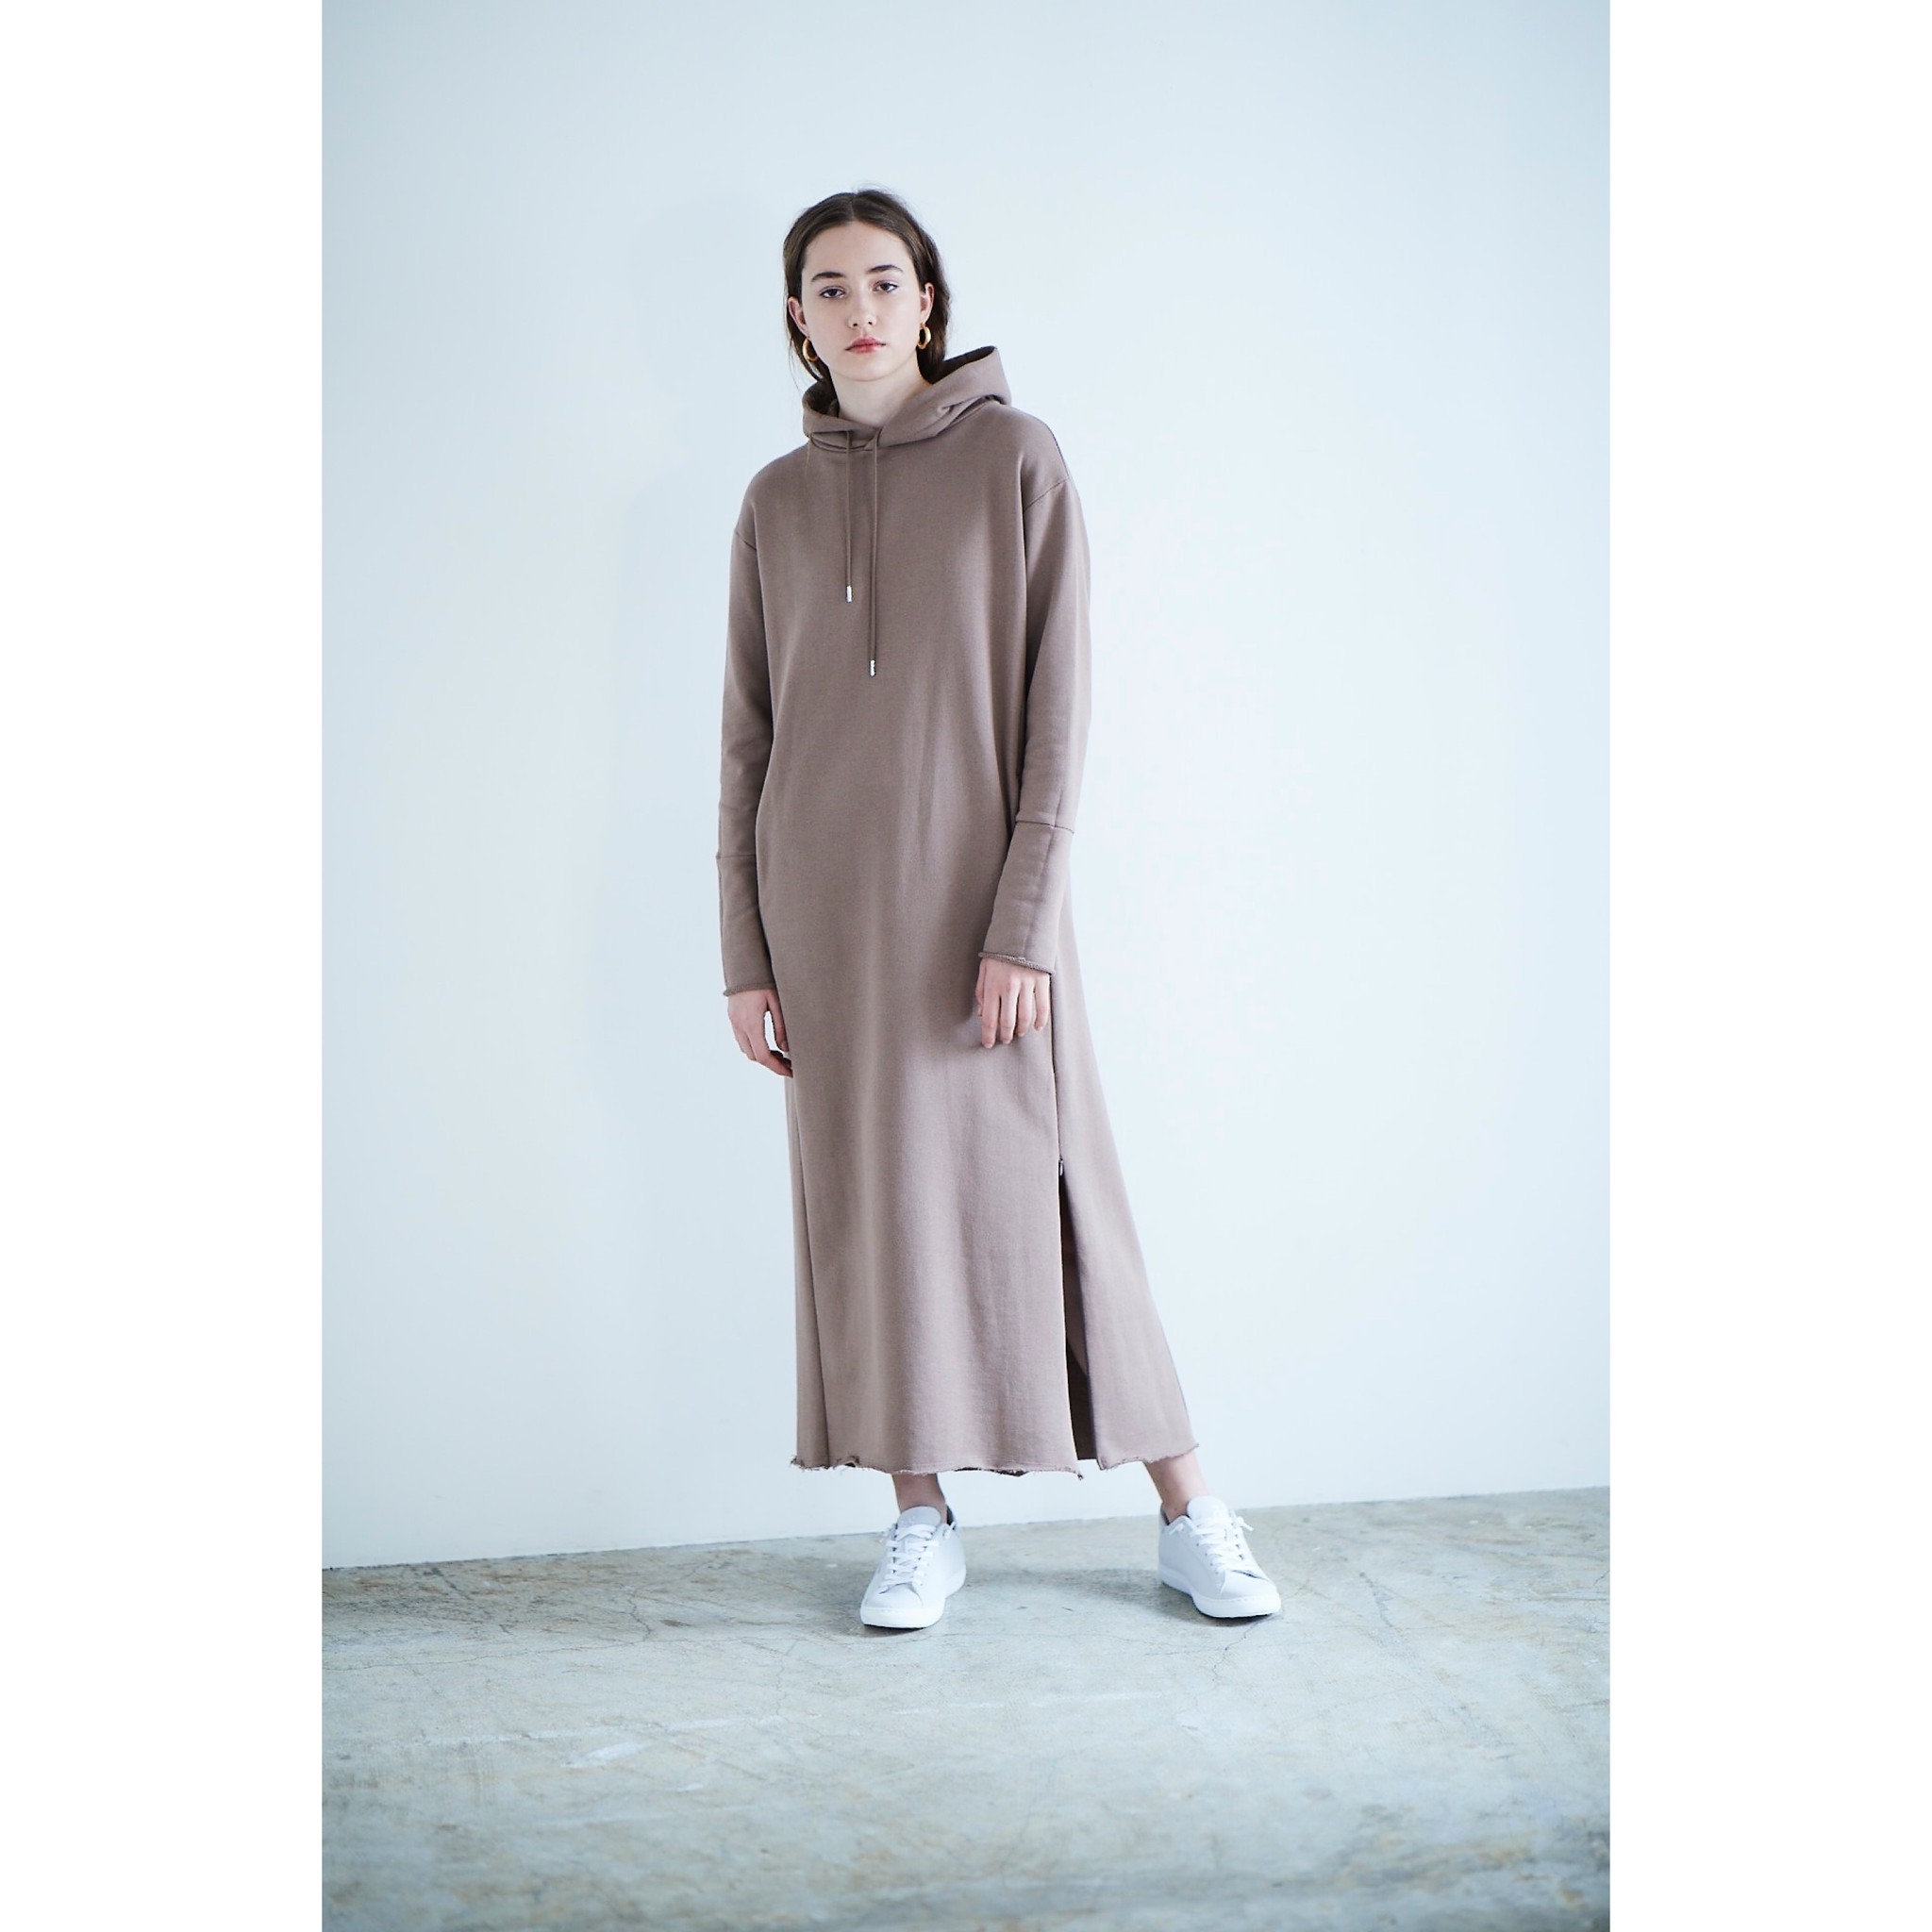 Kalna Parka dress